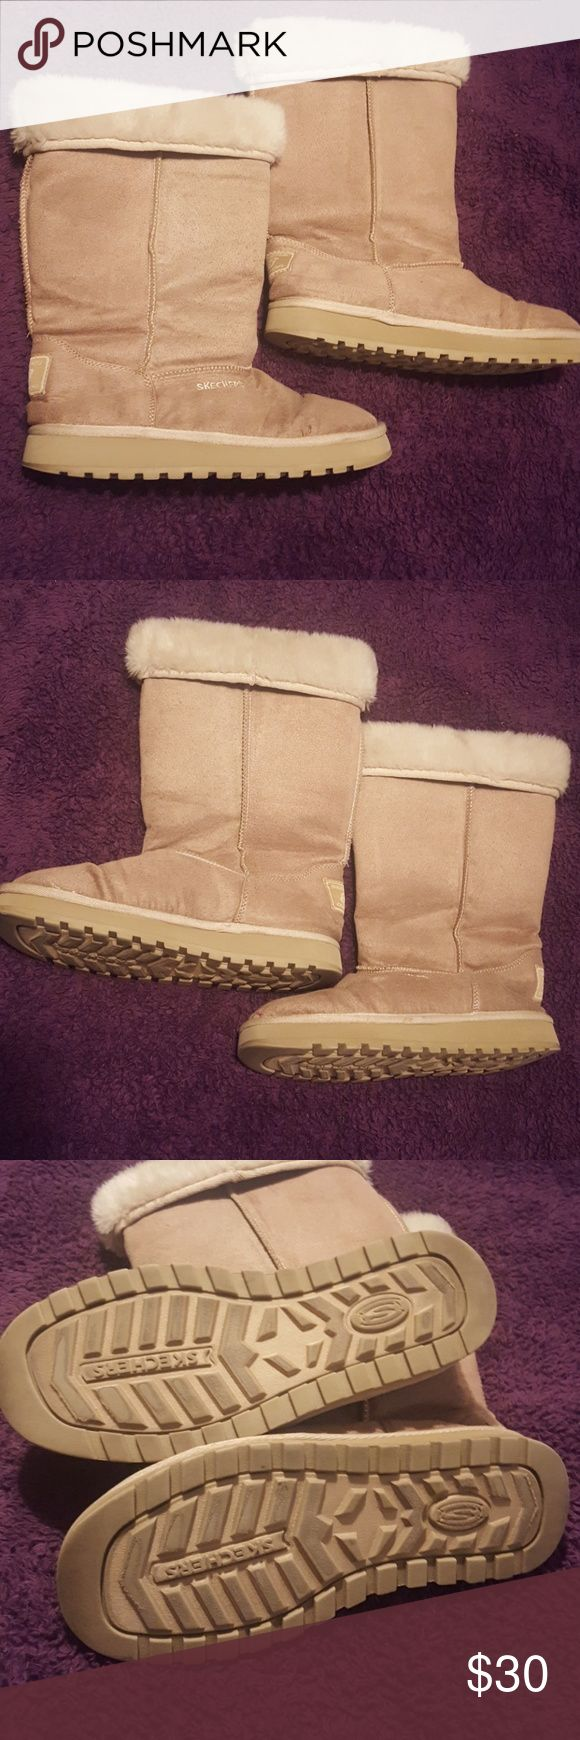 Skechers winter boots 9 These have been worn several times and are like Uggs. They can be worn up or folded down to expose the faux fur. They're light brown/dark cream colored faux suede. Foot bed is in perfect condition. Fur goes down about 2in inside the boots. Perfect addition to your fall and winter wardrobe! Smoke free and pet friendly home. Bundle to save on shipping. Happy poshing! Skechers Shoes Winter & Rain Boots